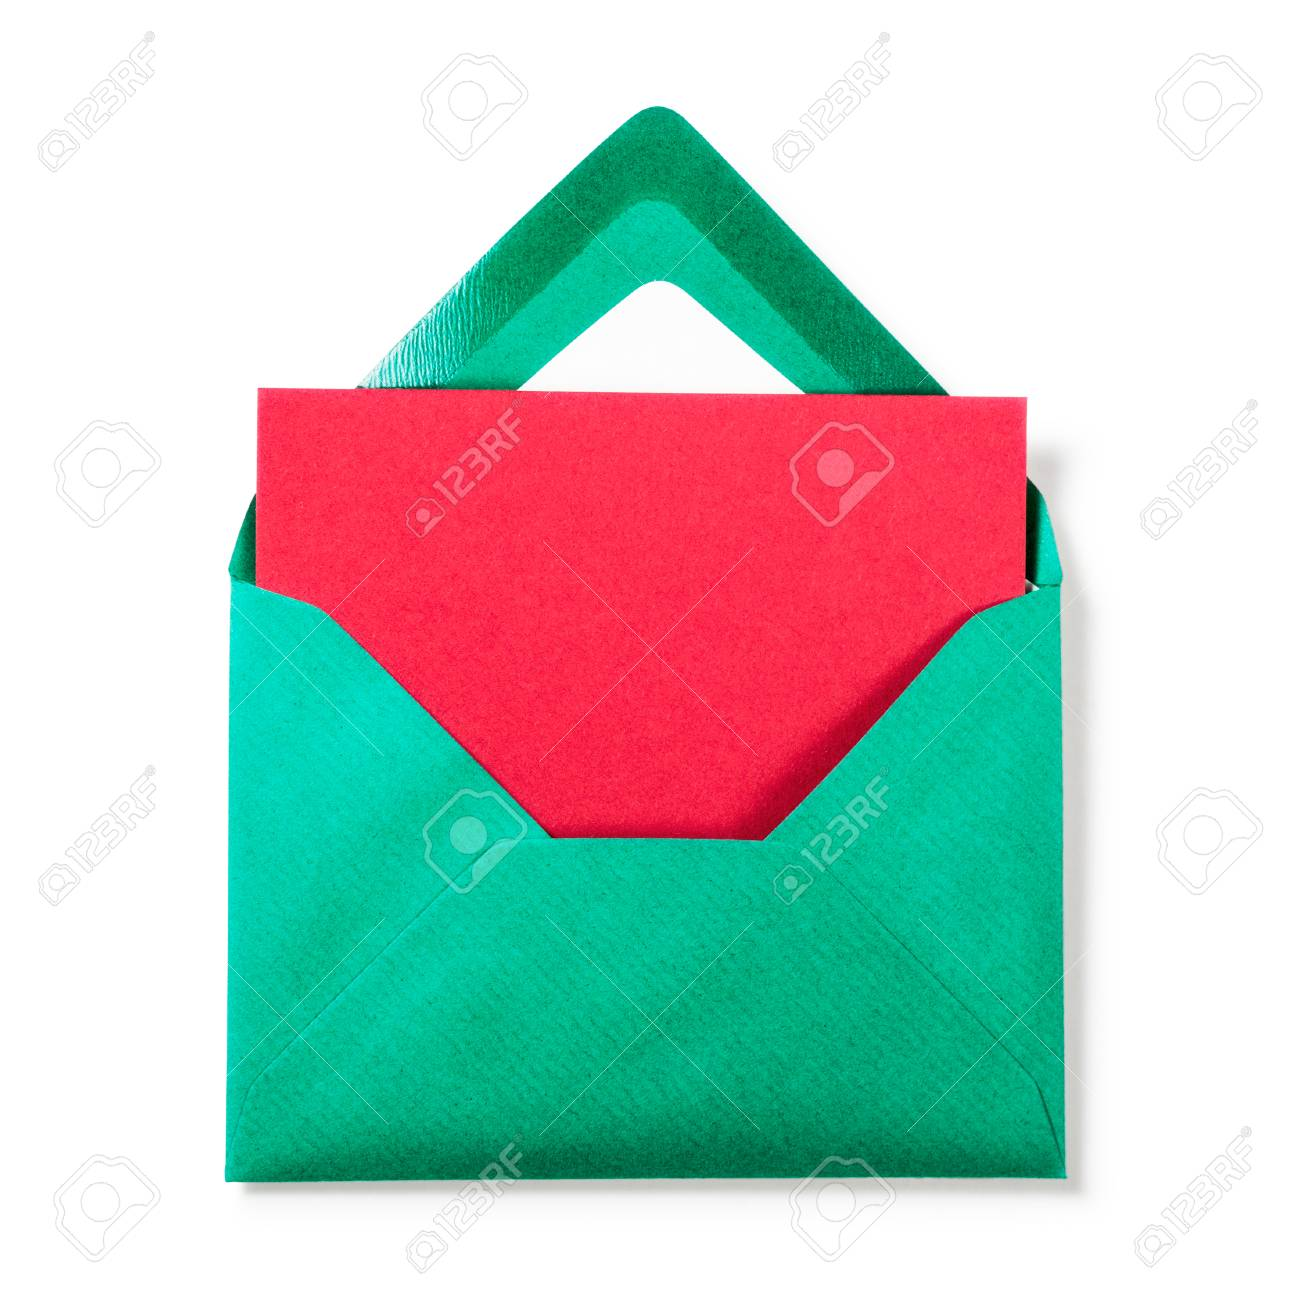 Green Envelope With Red Greeting Card On White Background Copy